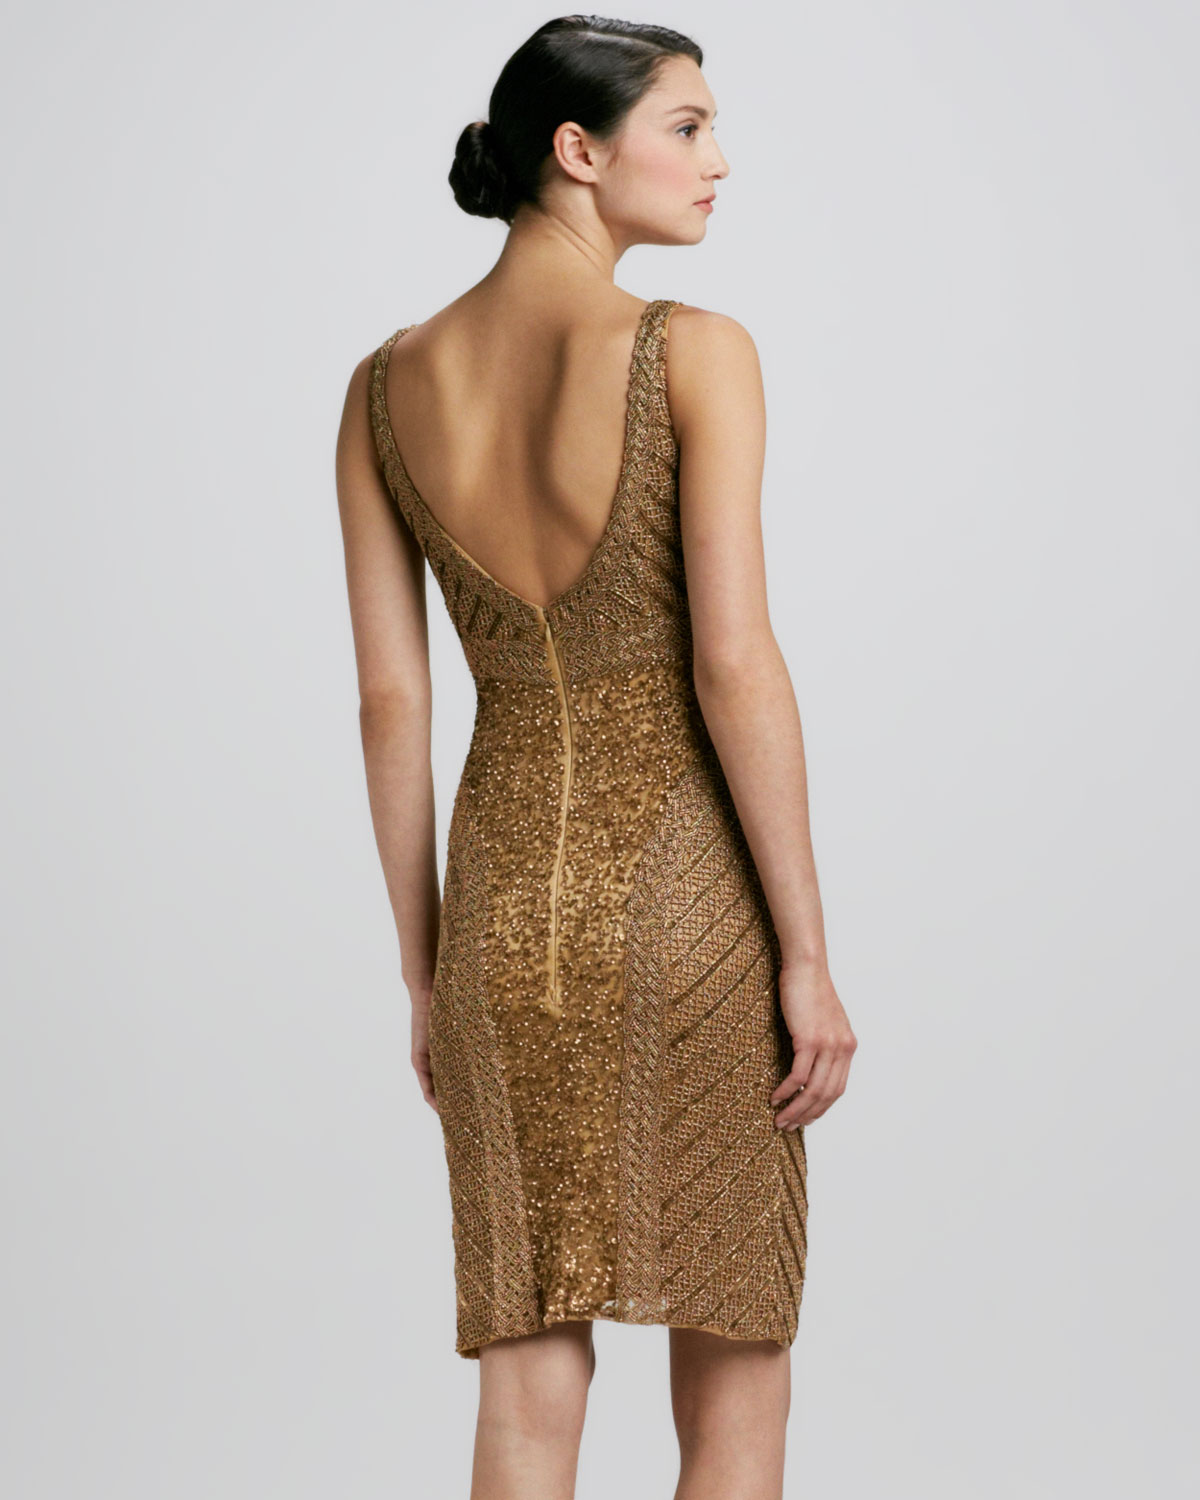 Lyst - Theia Beaded Sequined Cocktail Dress in Brown